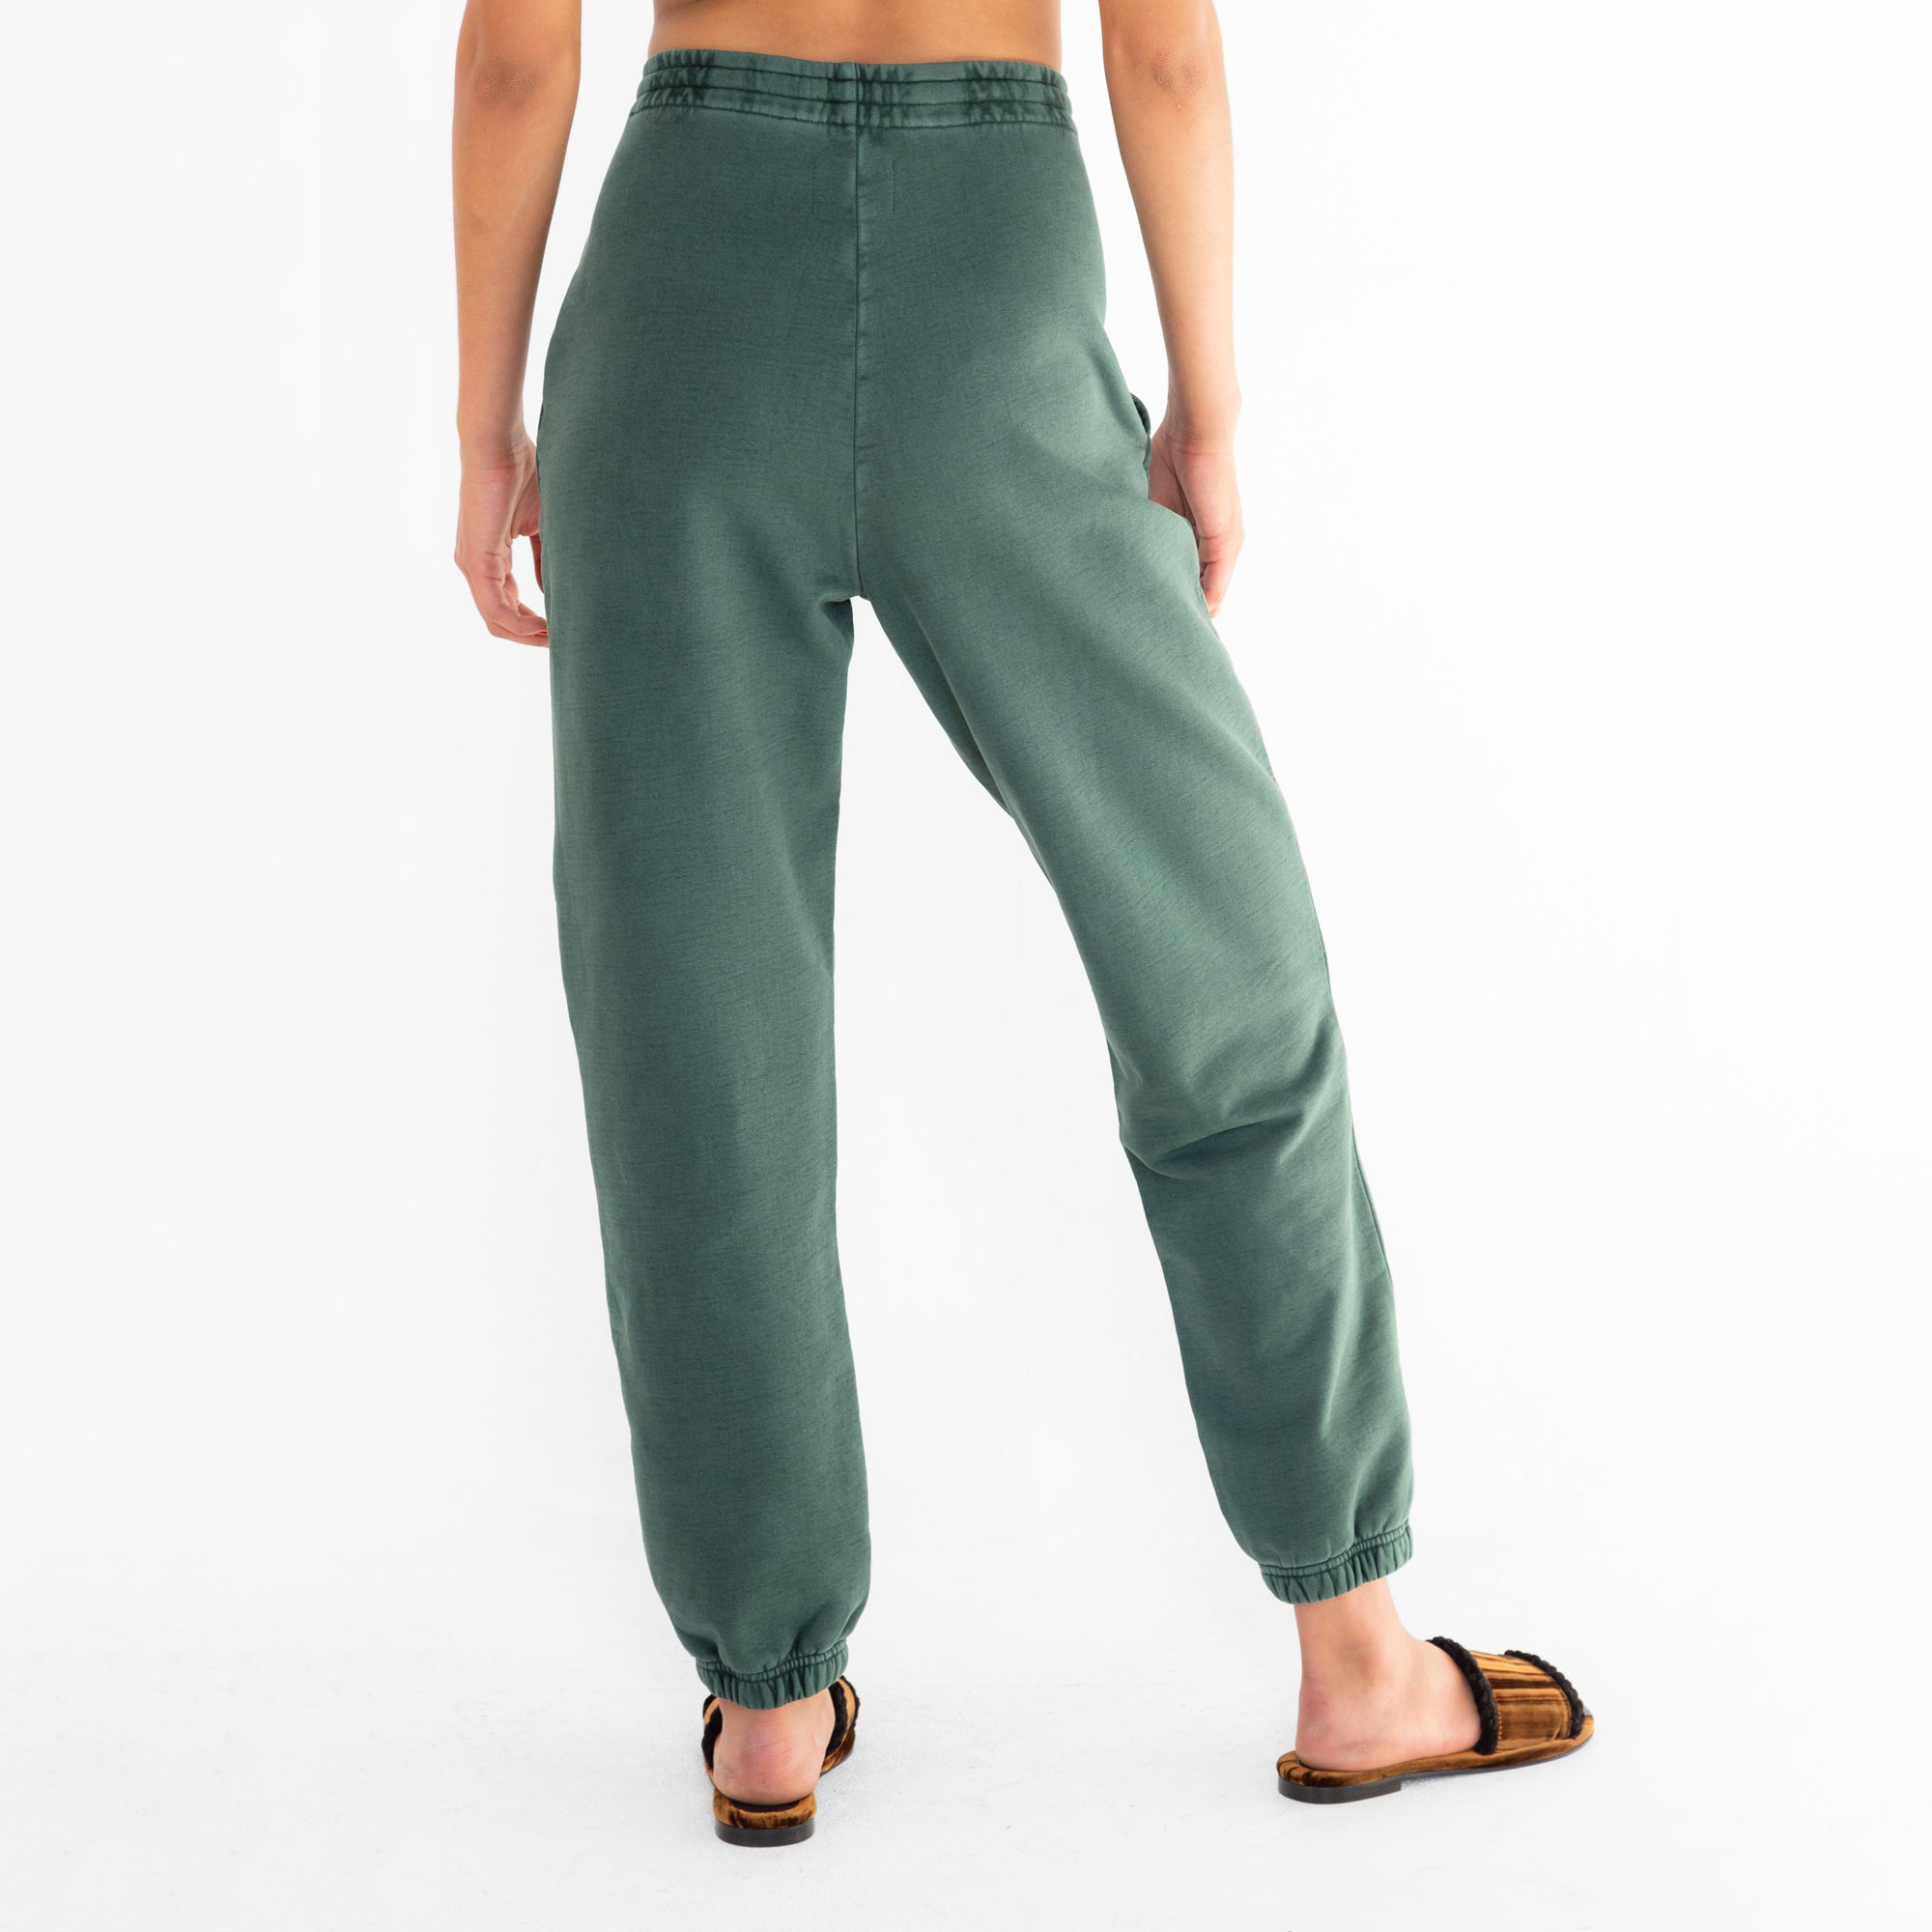 Kith Terryka Sweatpant - Amazon